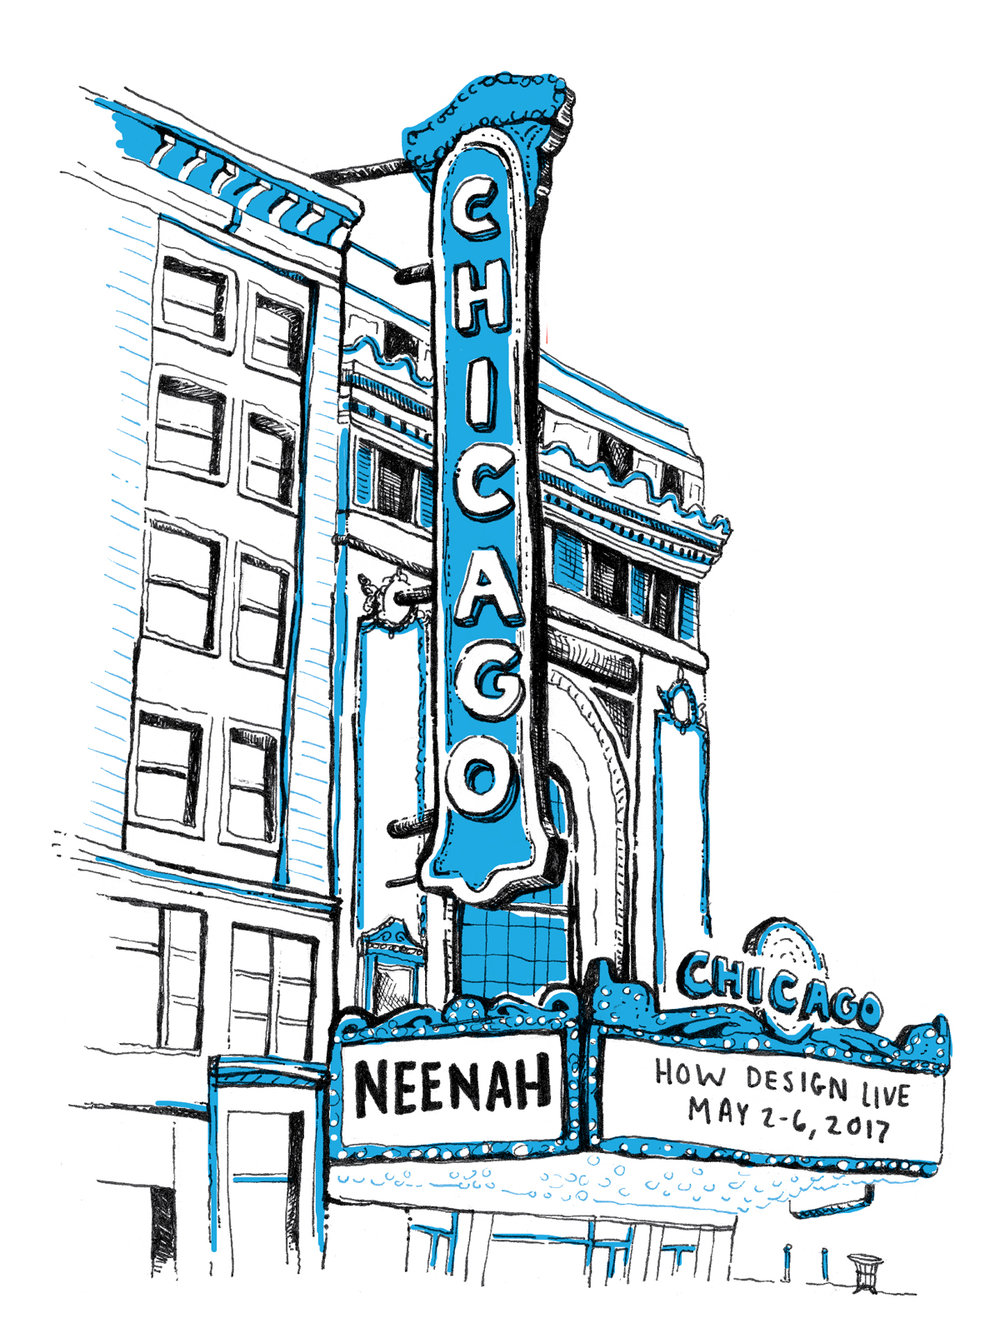 Cover illustration of Chicago Theater, hand drawn by freelance graphic designer Russell Shaw for Neenah Paper at the HOW Design Live 2017 conference